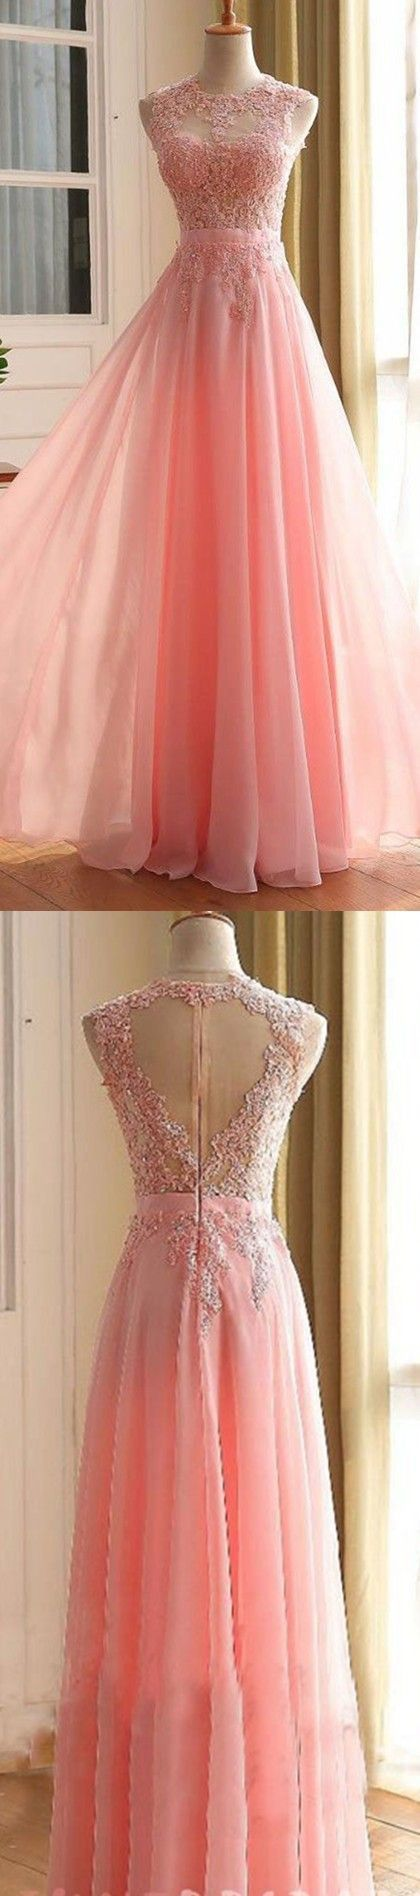 Charming long prom dress appliques pink prom dresselegant prom